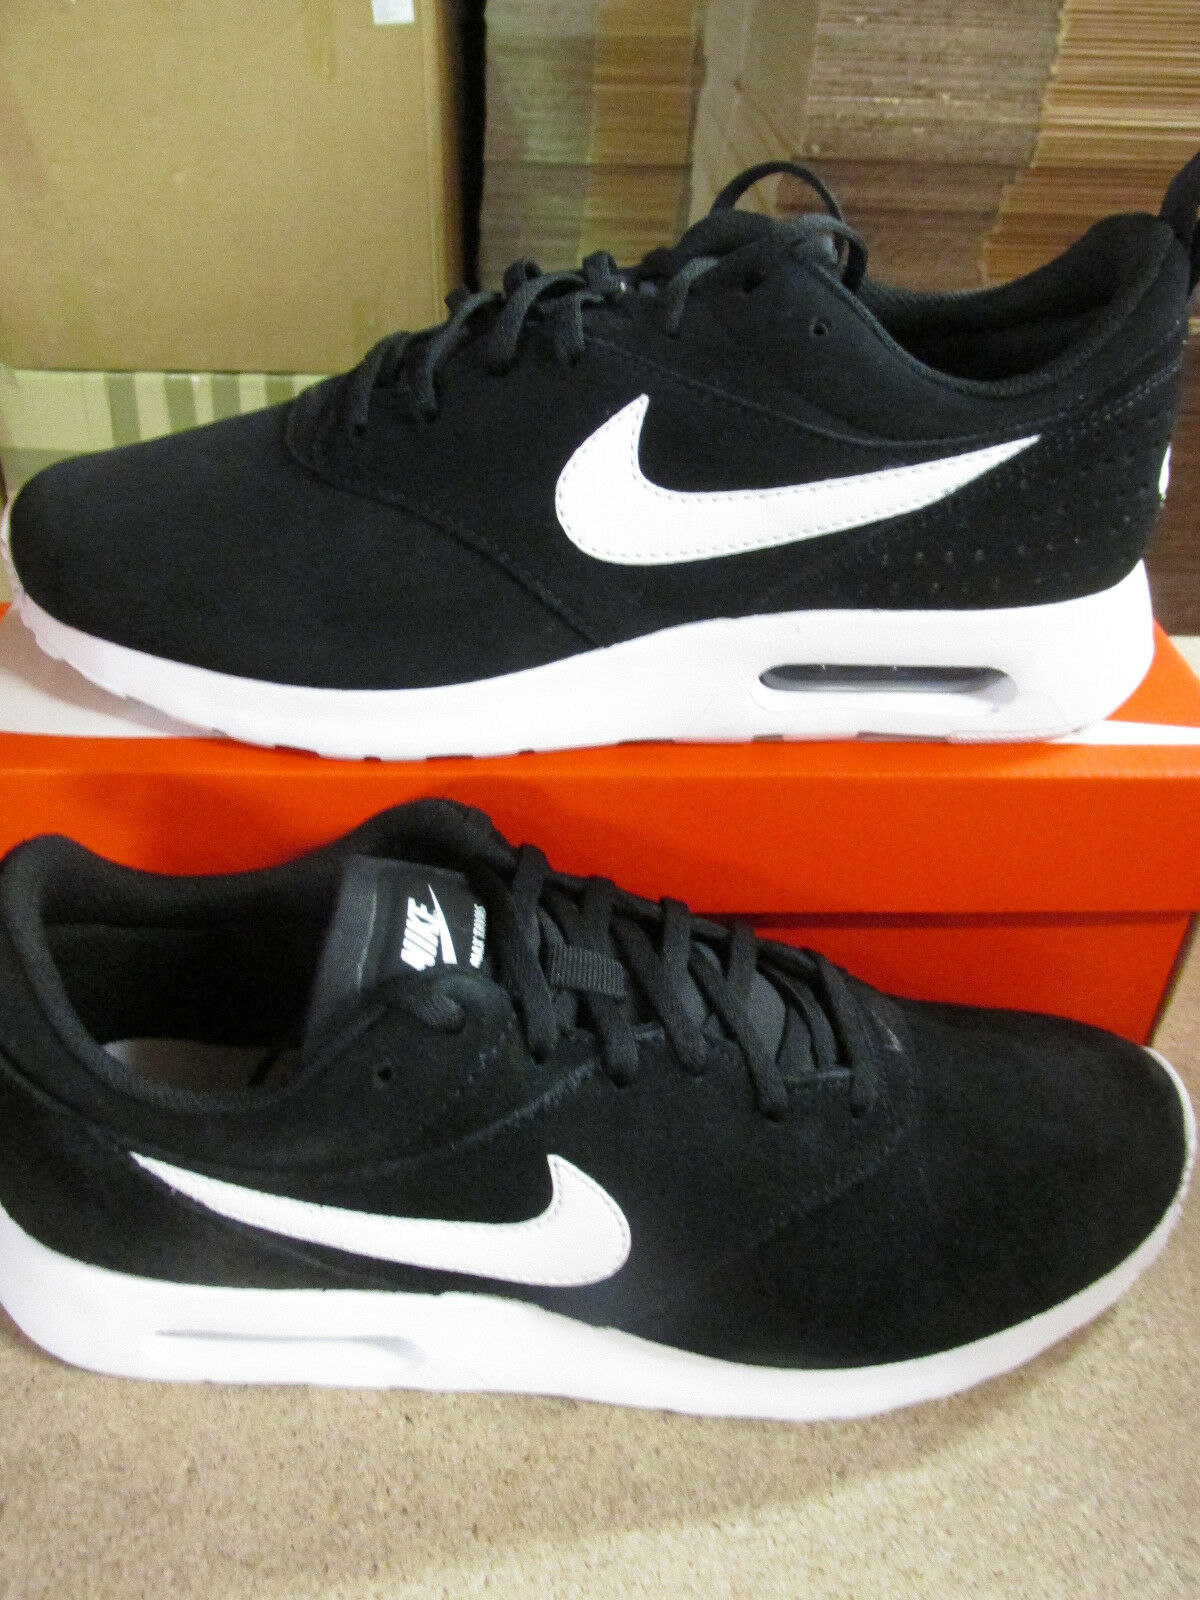 nike air max tavas LTR mens trainers 802611 001 sneakers shoes